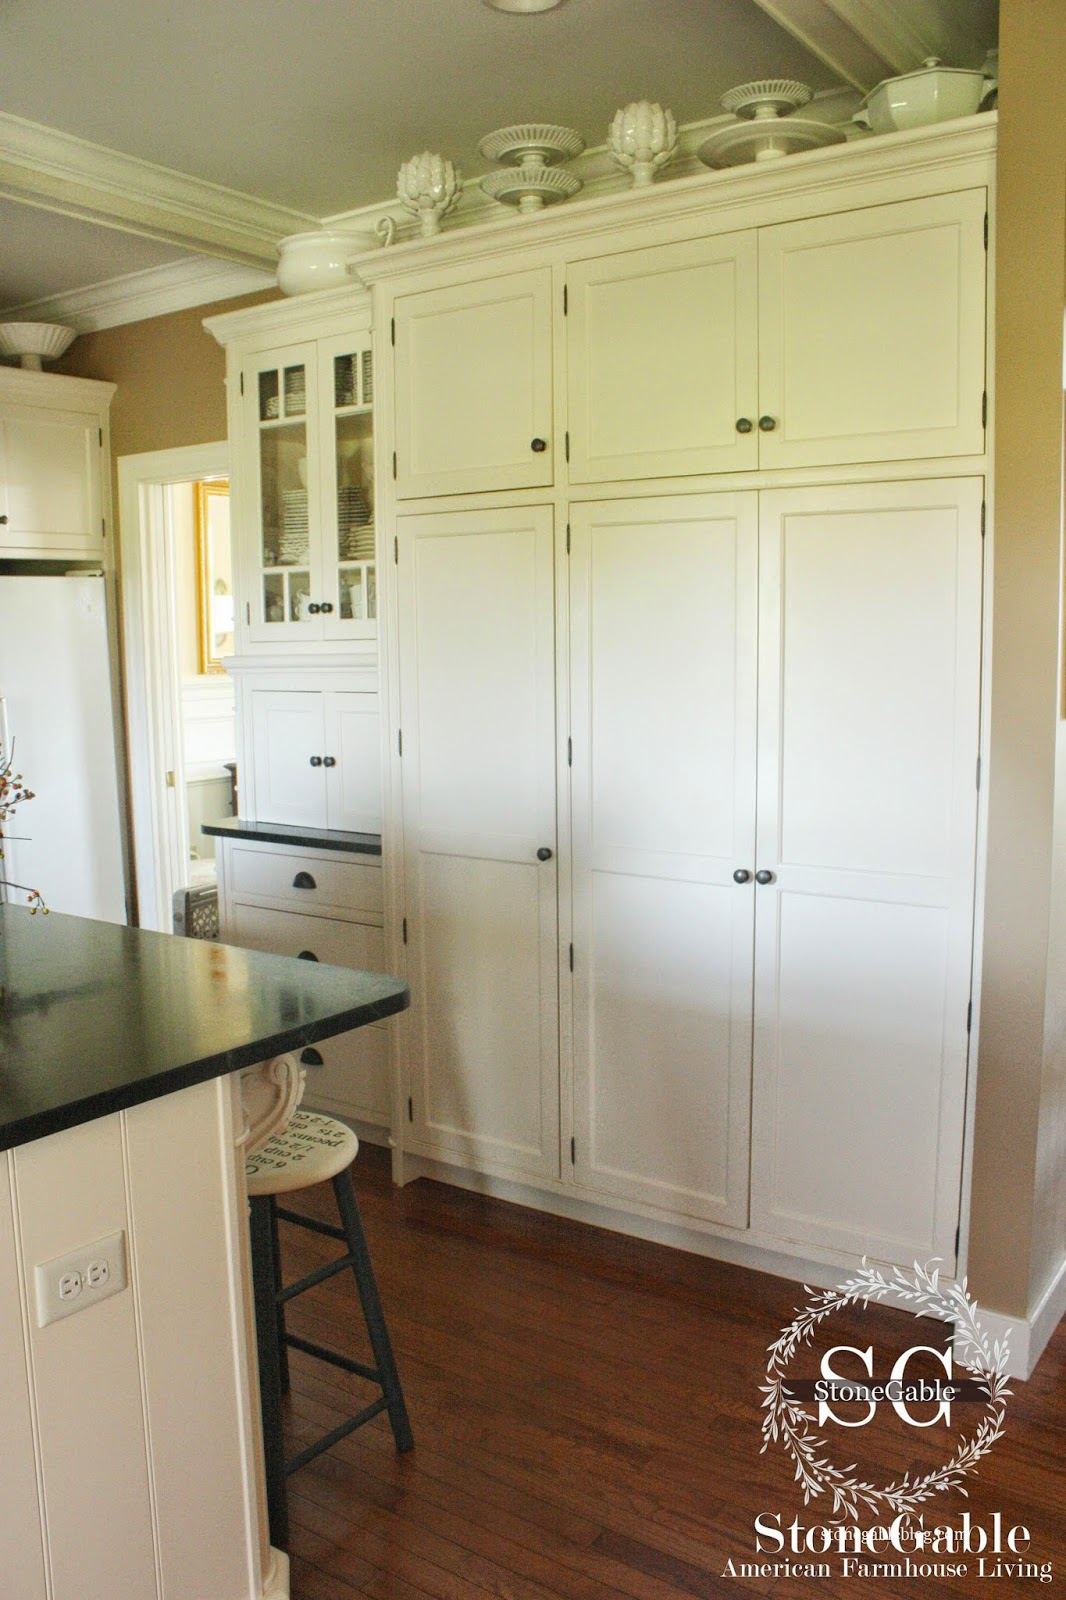 10 elements of a farmhouse kitchen stonegable for Are white kitchen cabinets still in style